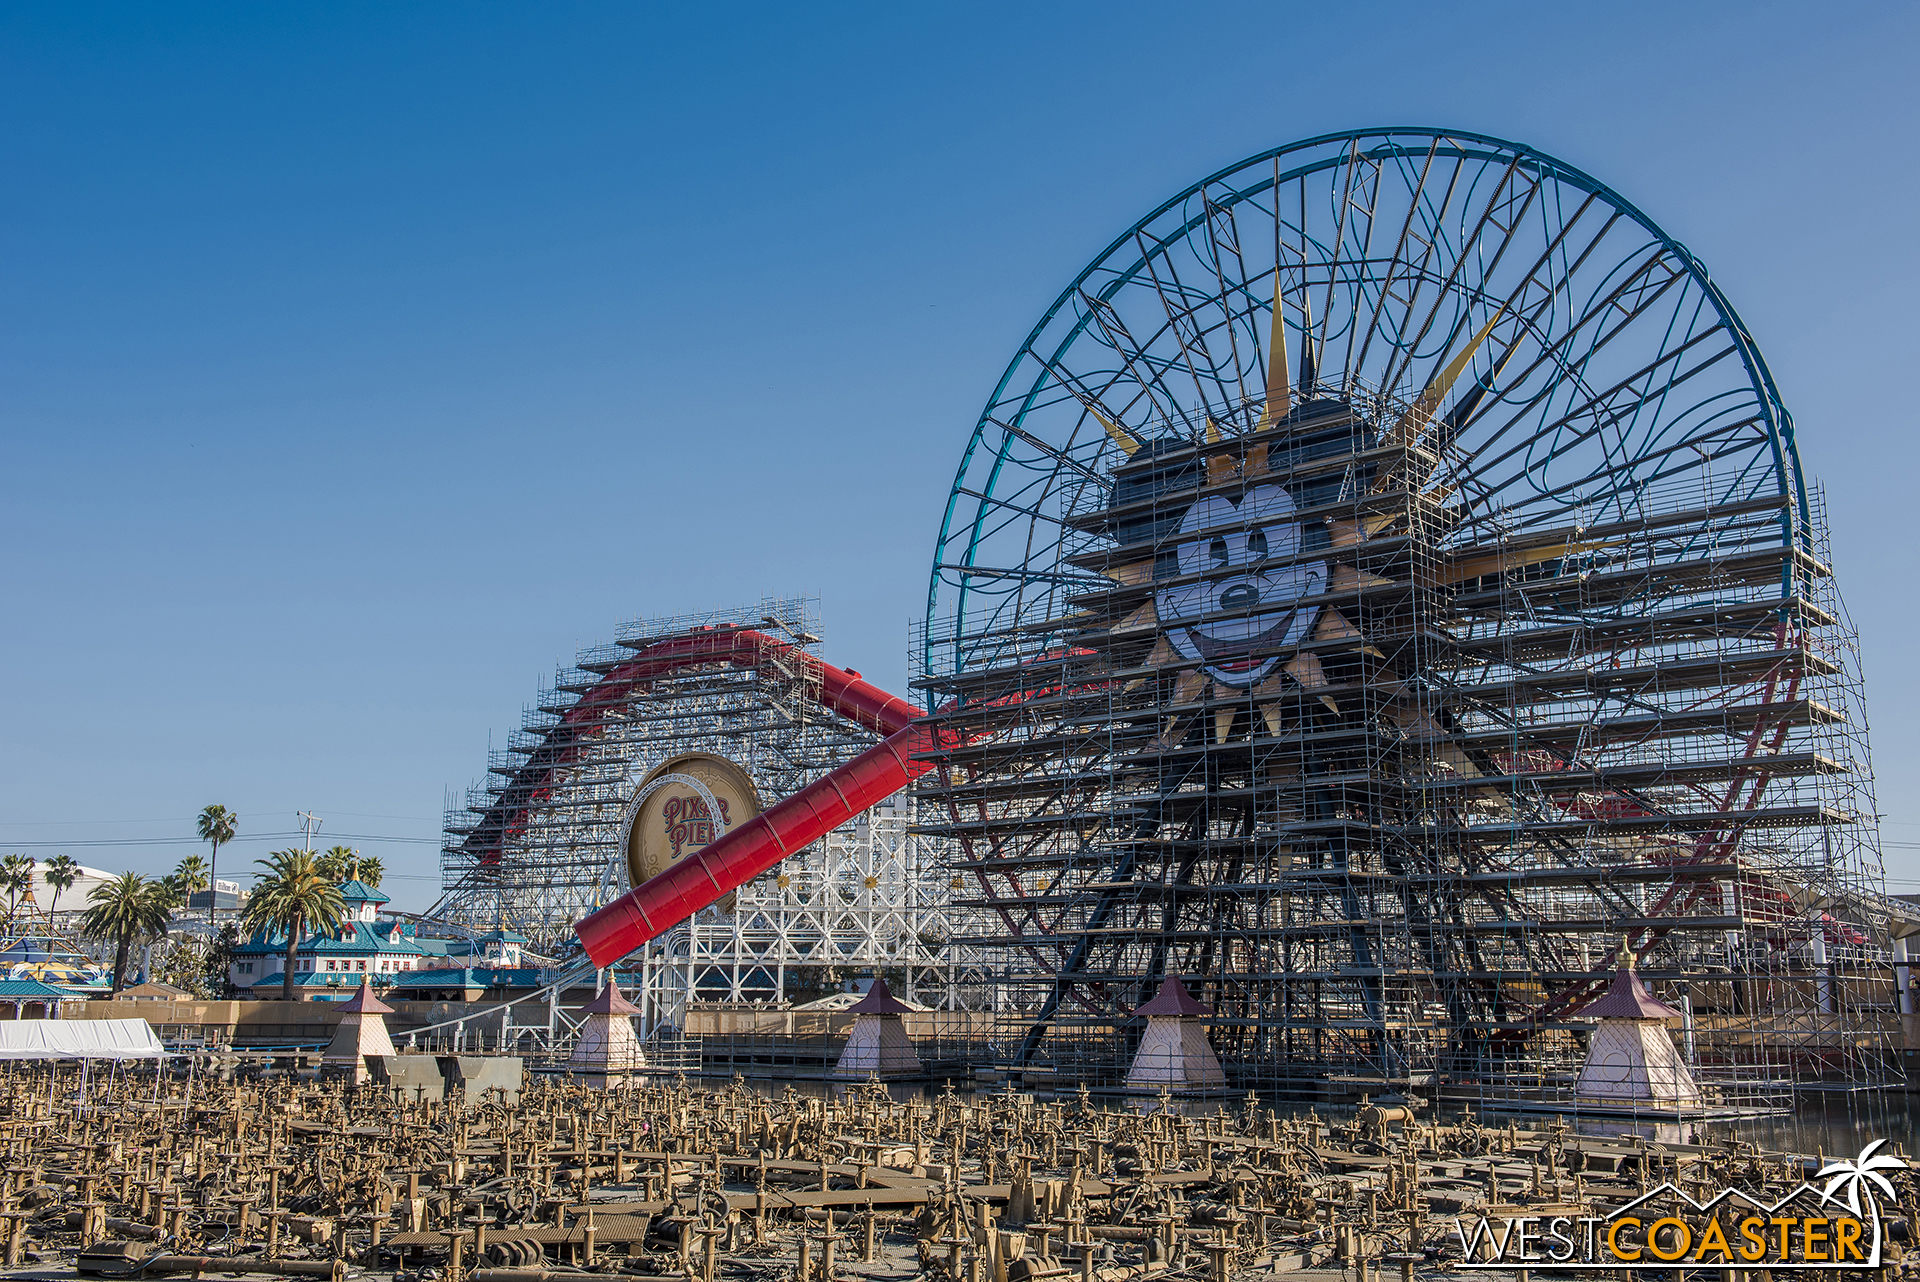 Now, I mentioned Mickey's Fun Wheel earlier, but it's not going to be named that any longer.